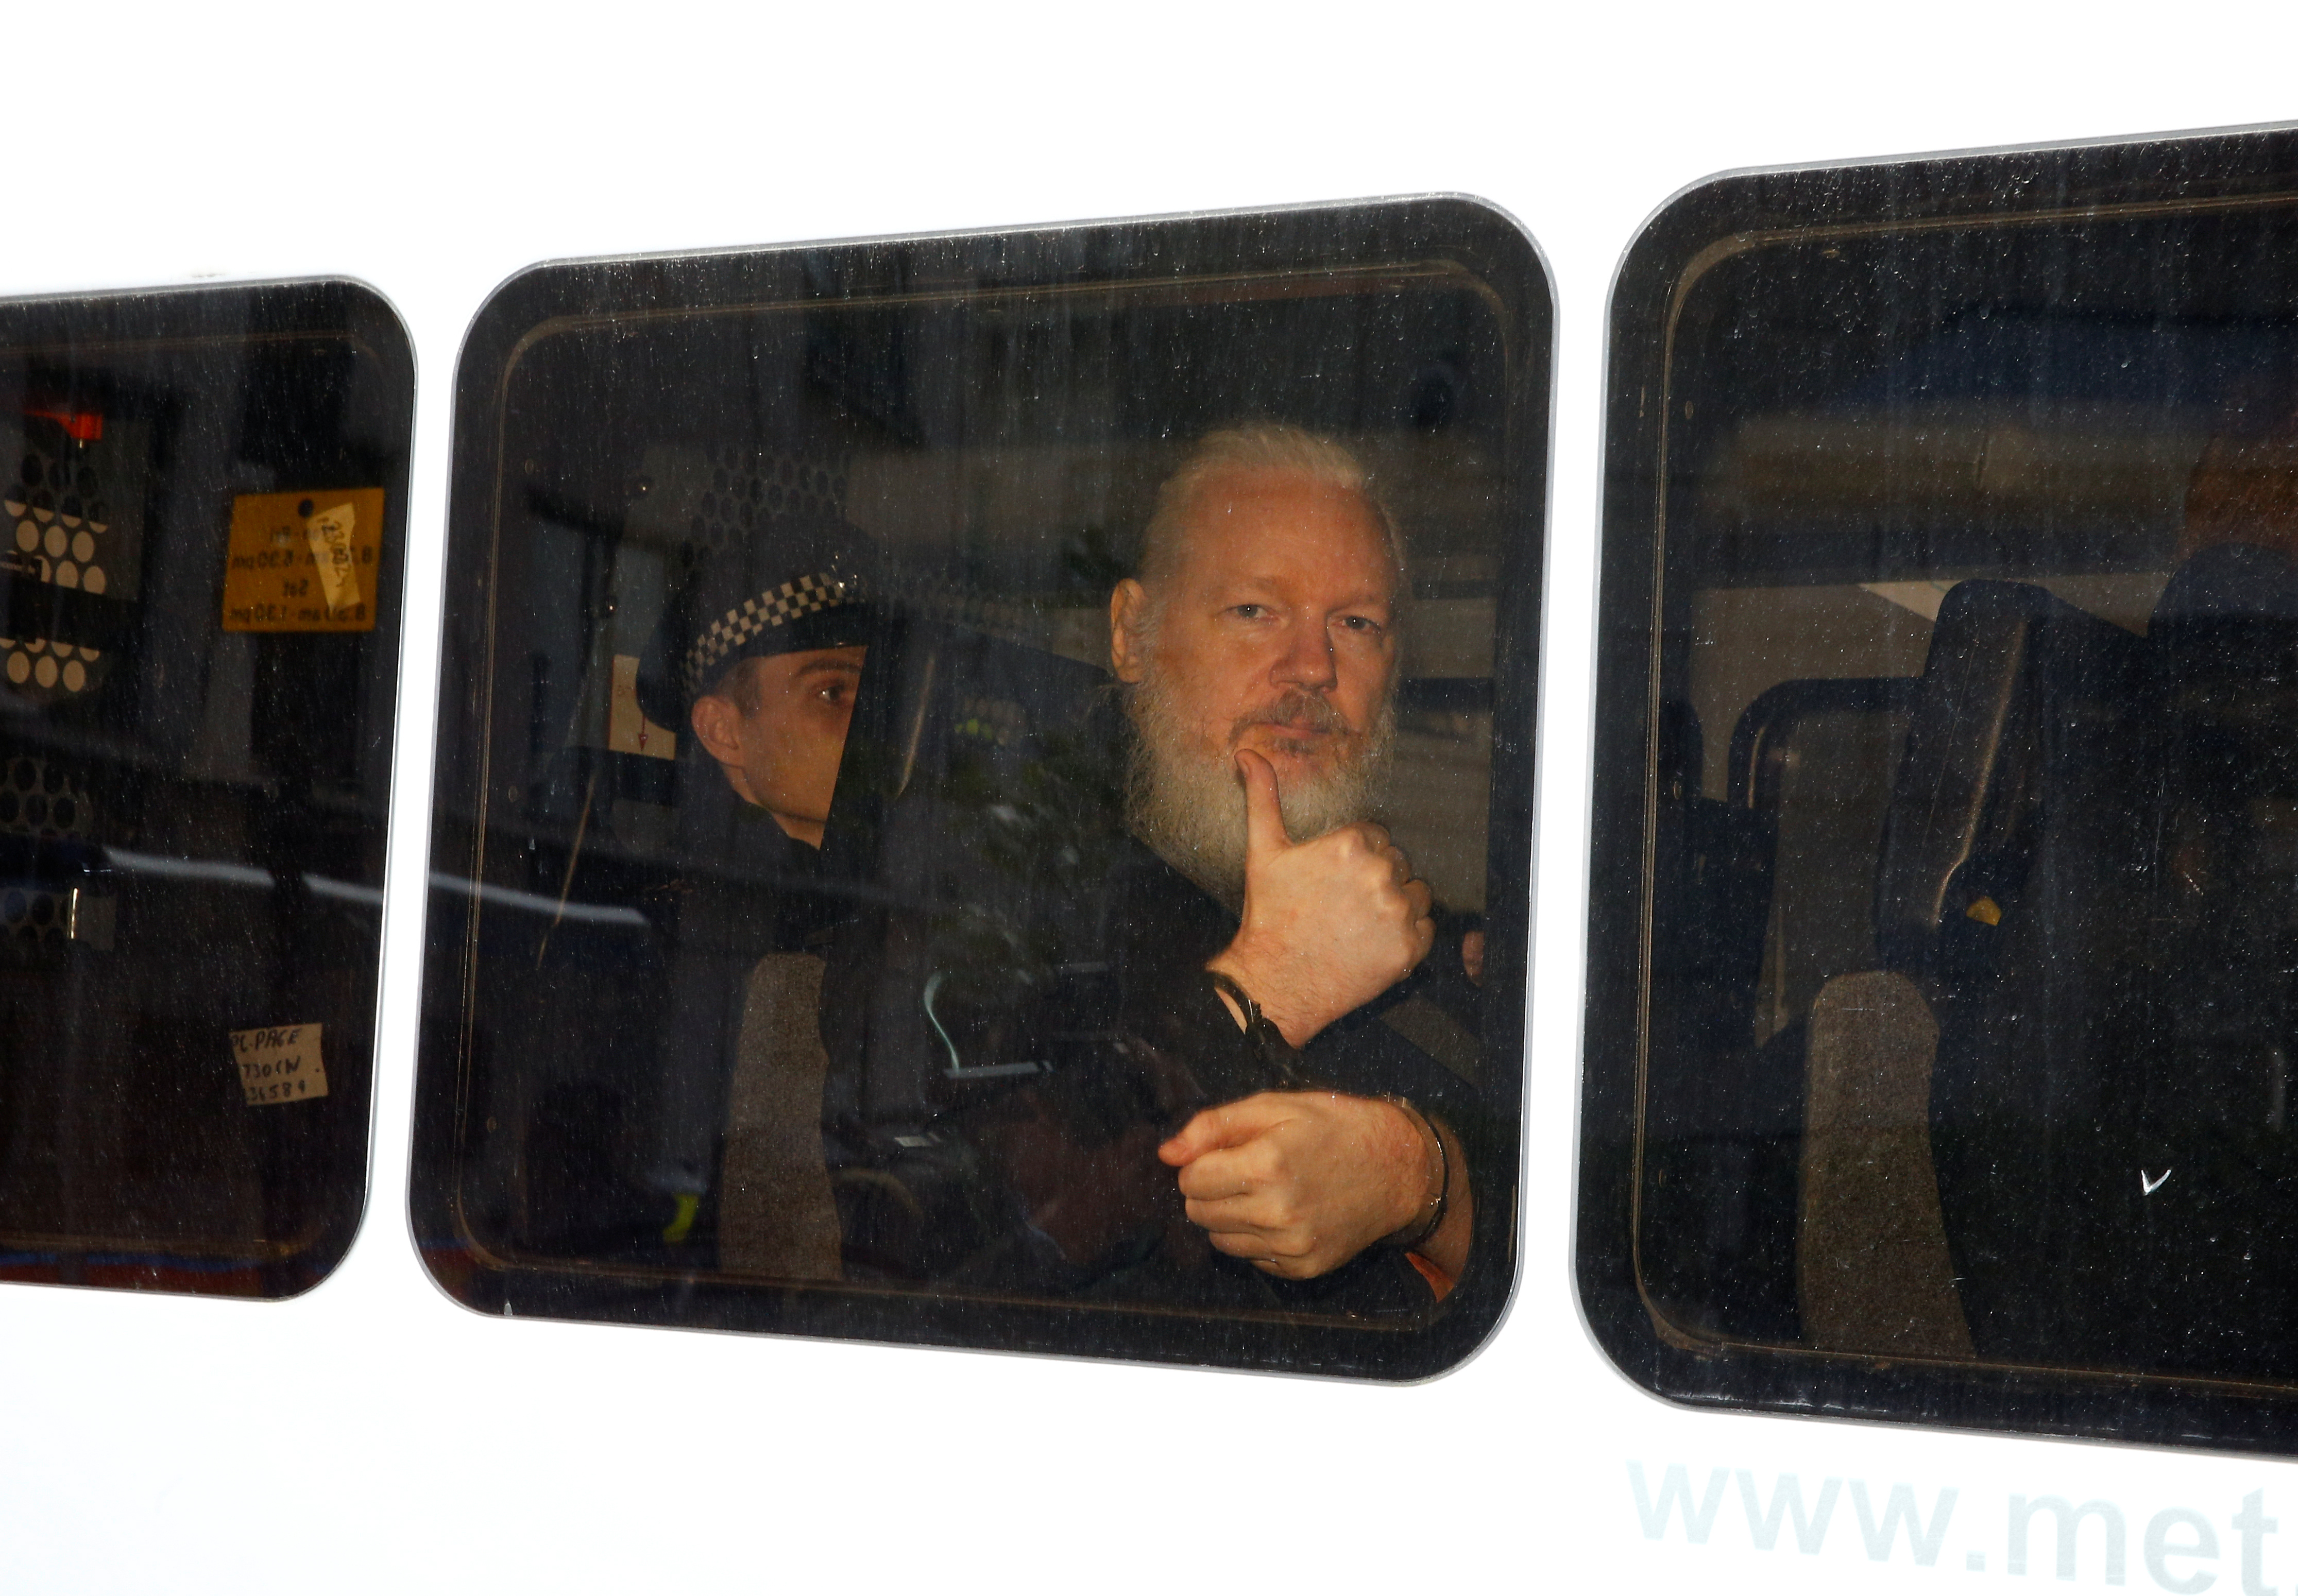 Targeting the Medical Evidence: The US Challenge on Assange's Health